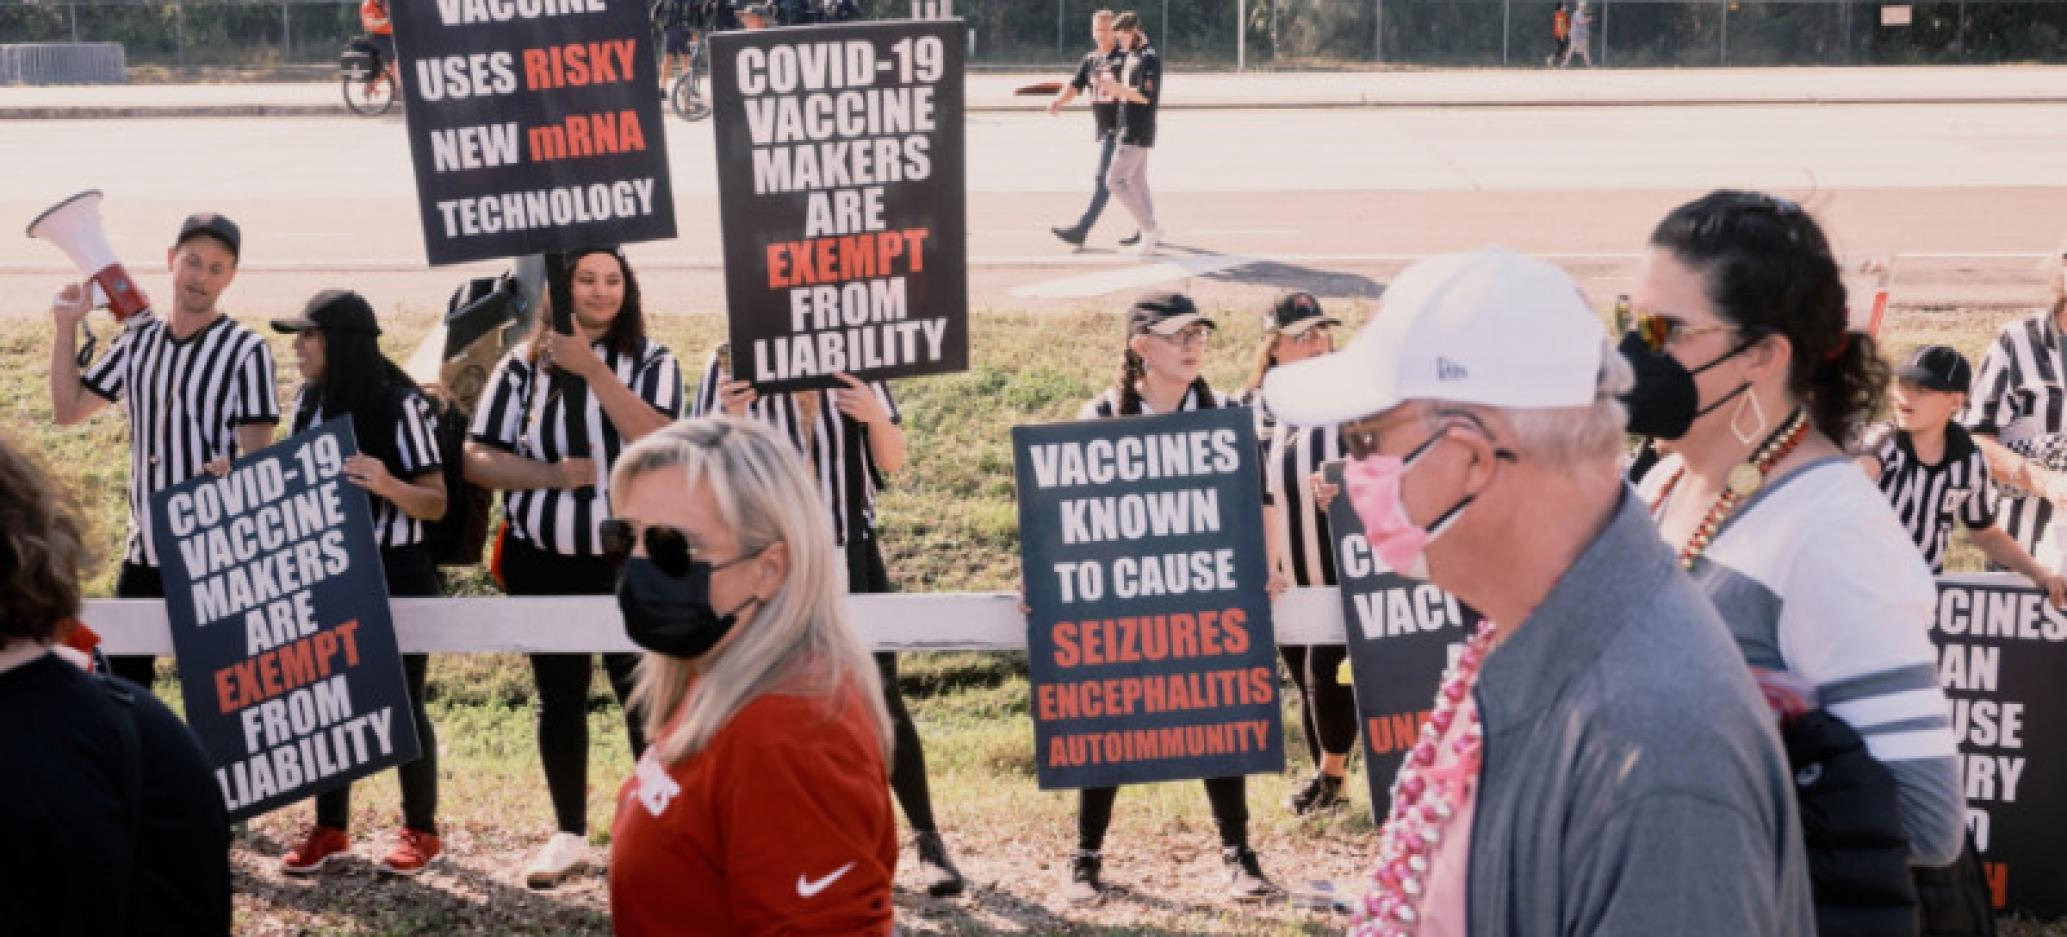 Facebook to Remove False Claims About the COVID-19 Vaccines